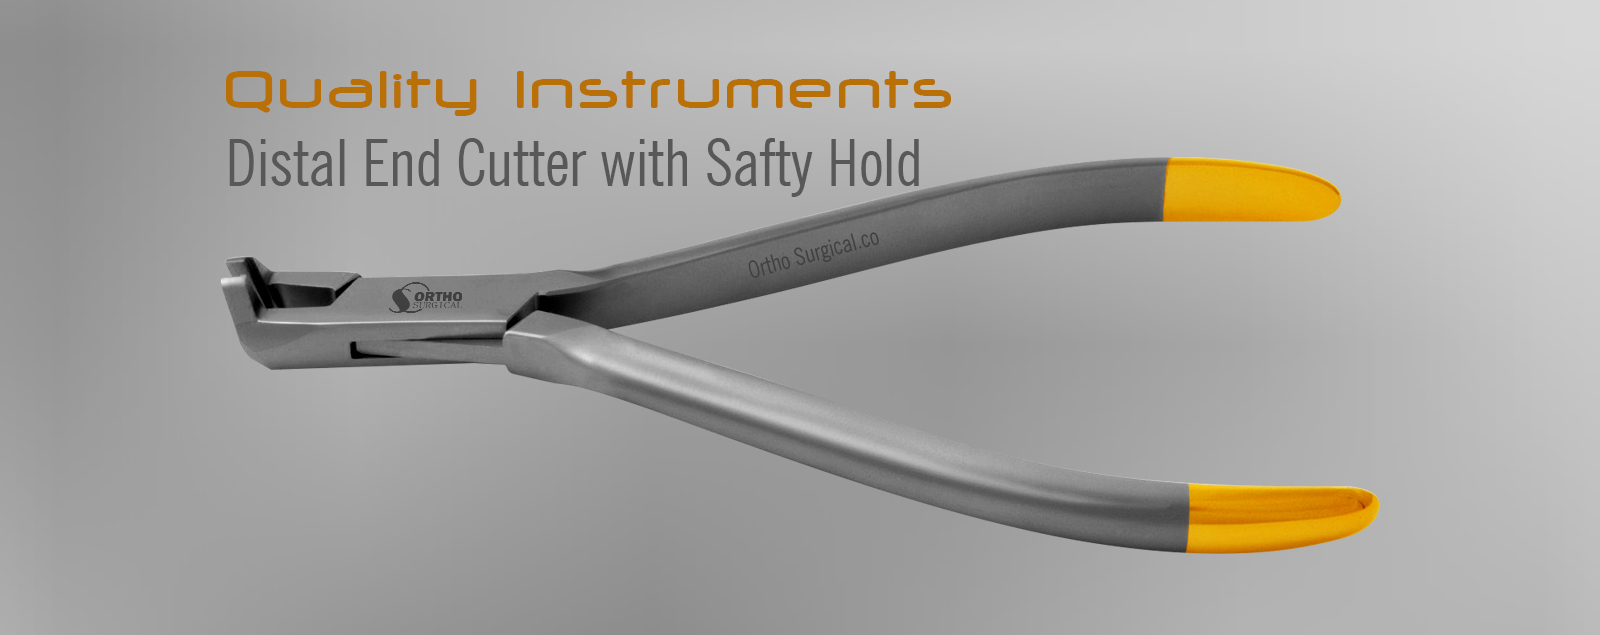 Distal End Cutter with Safty Hold